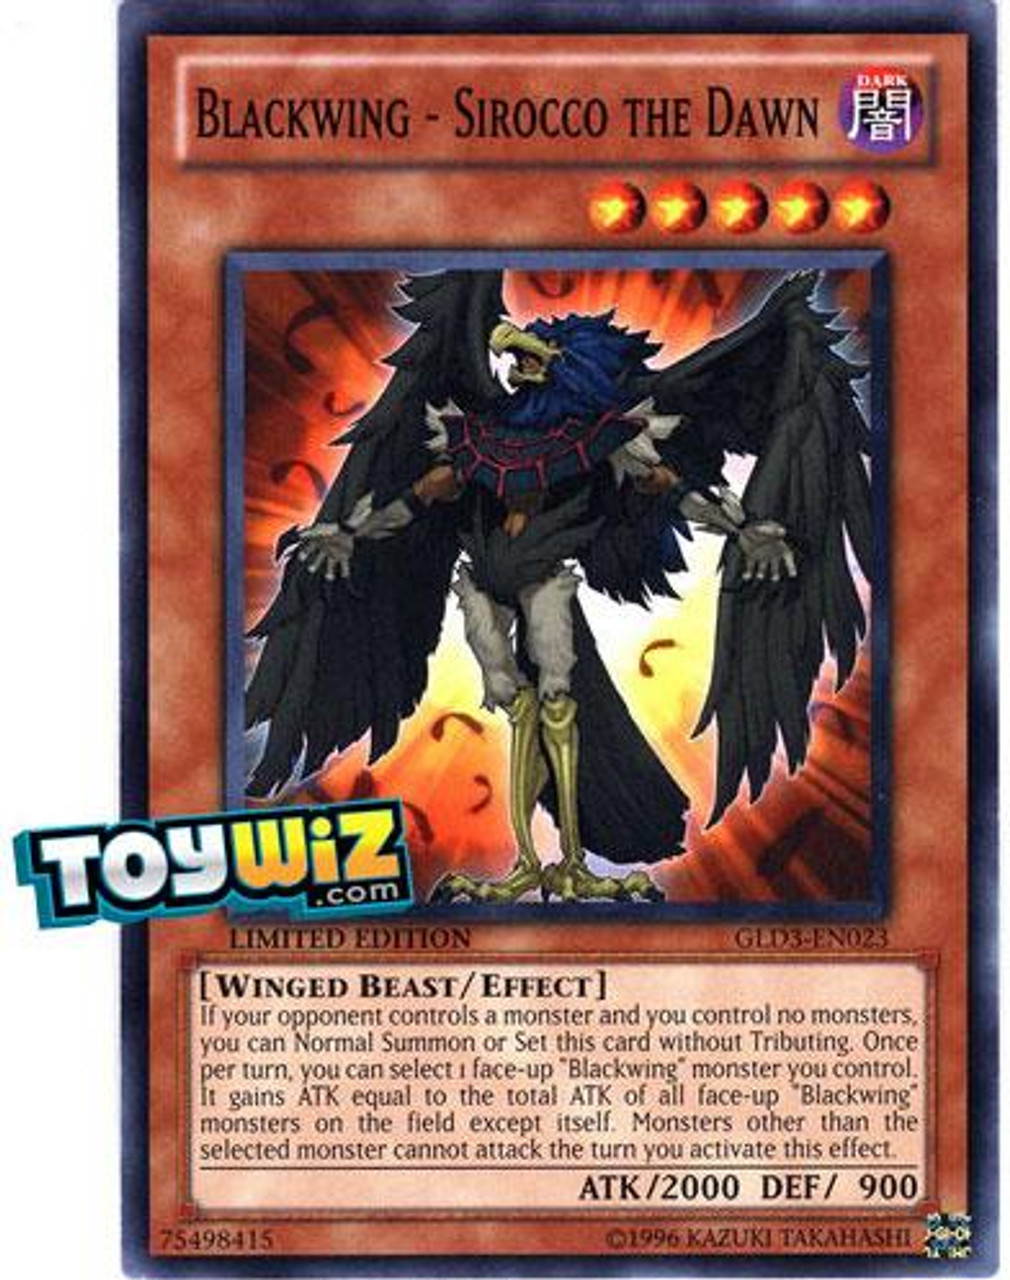 YuGiOh Gold Series 3 2010 Common Blackwing - Sirocco the Dawn GLD3-EN023